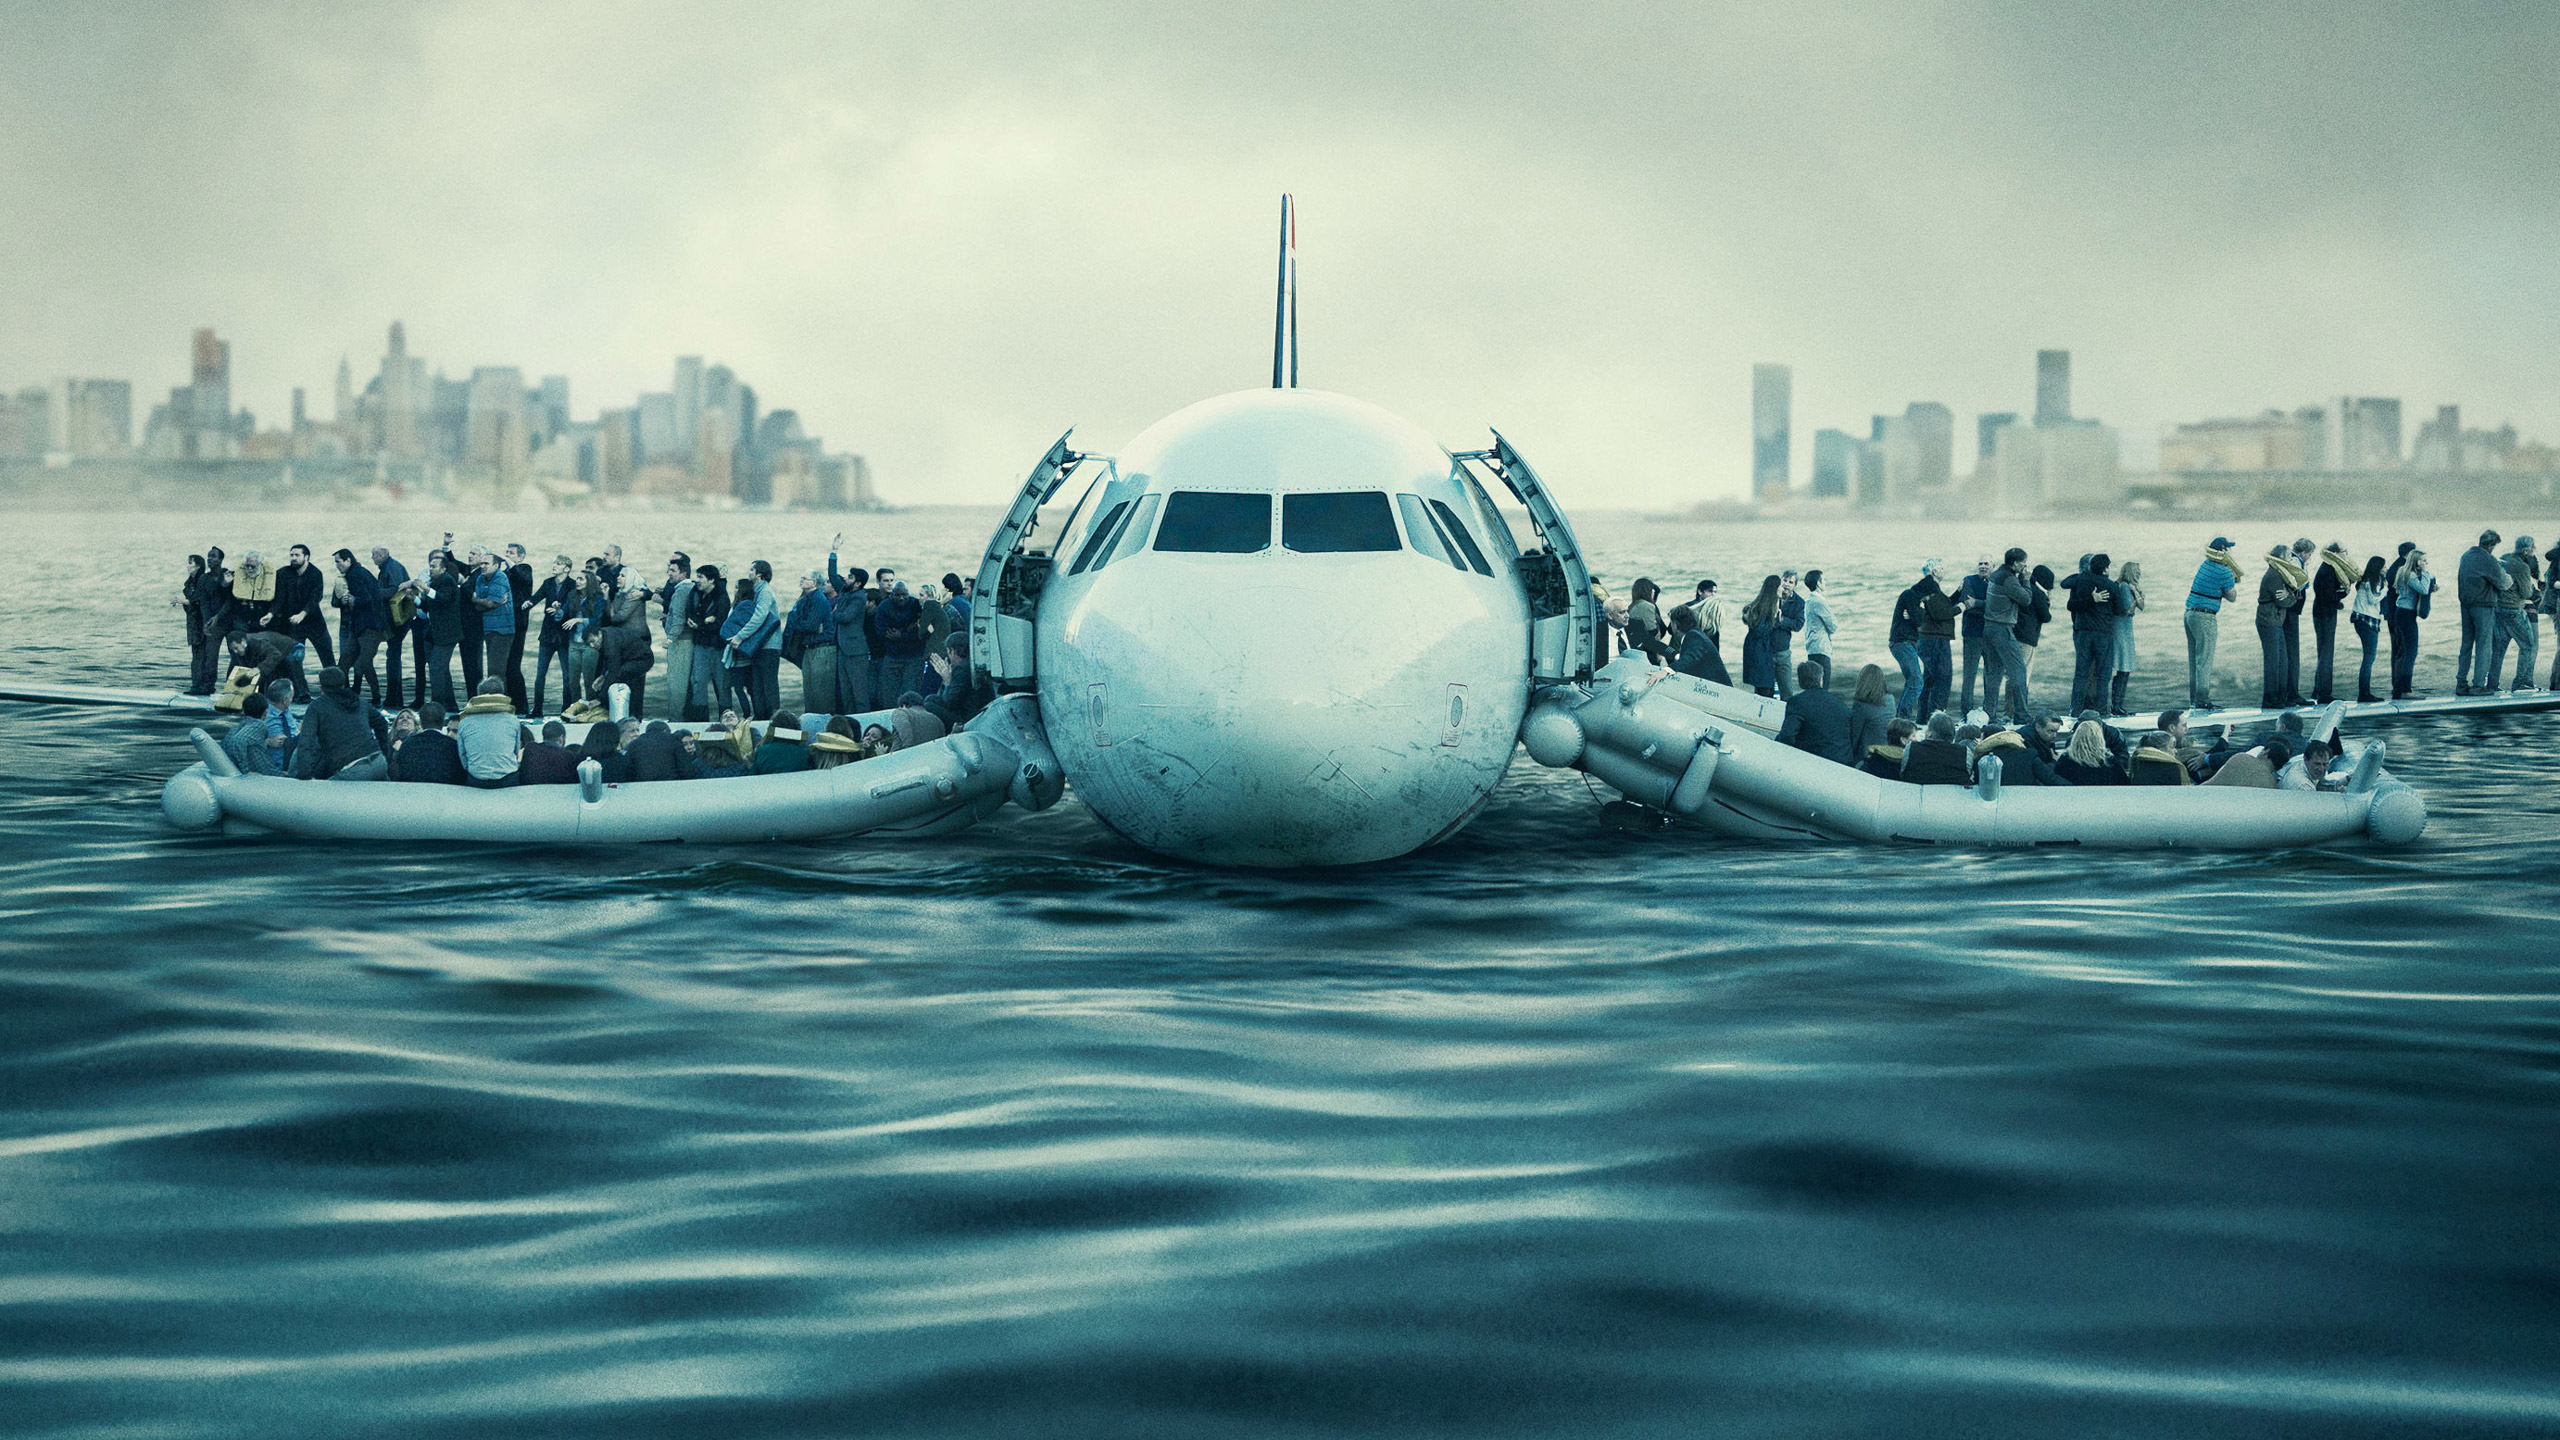 sully movie wallpaper background 61614